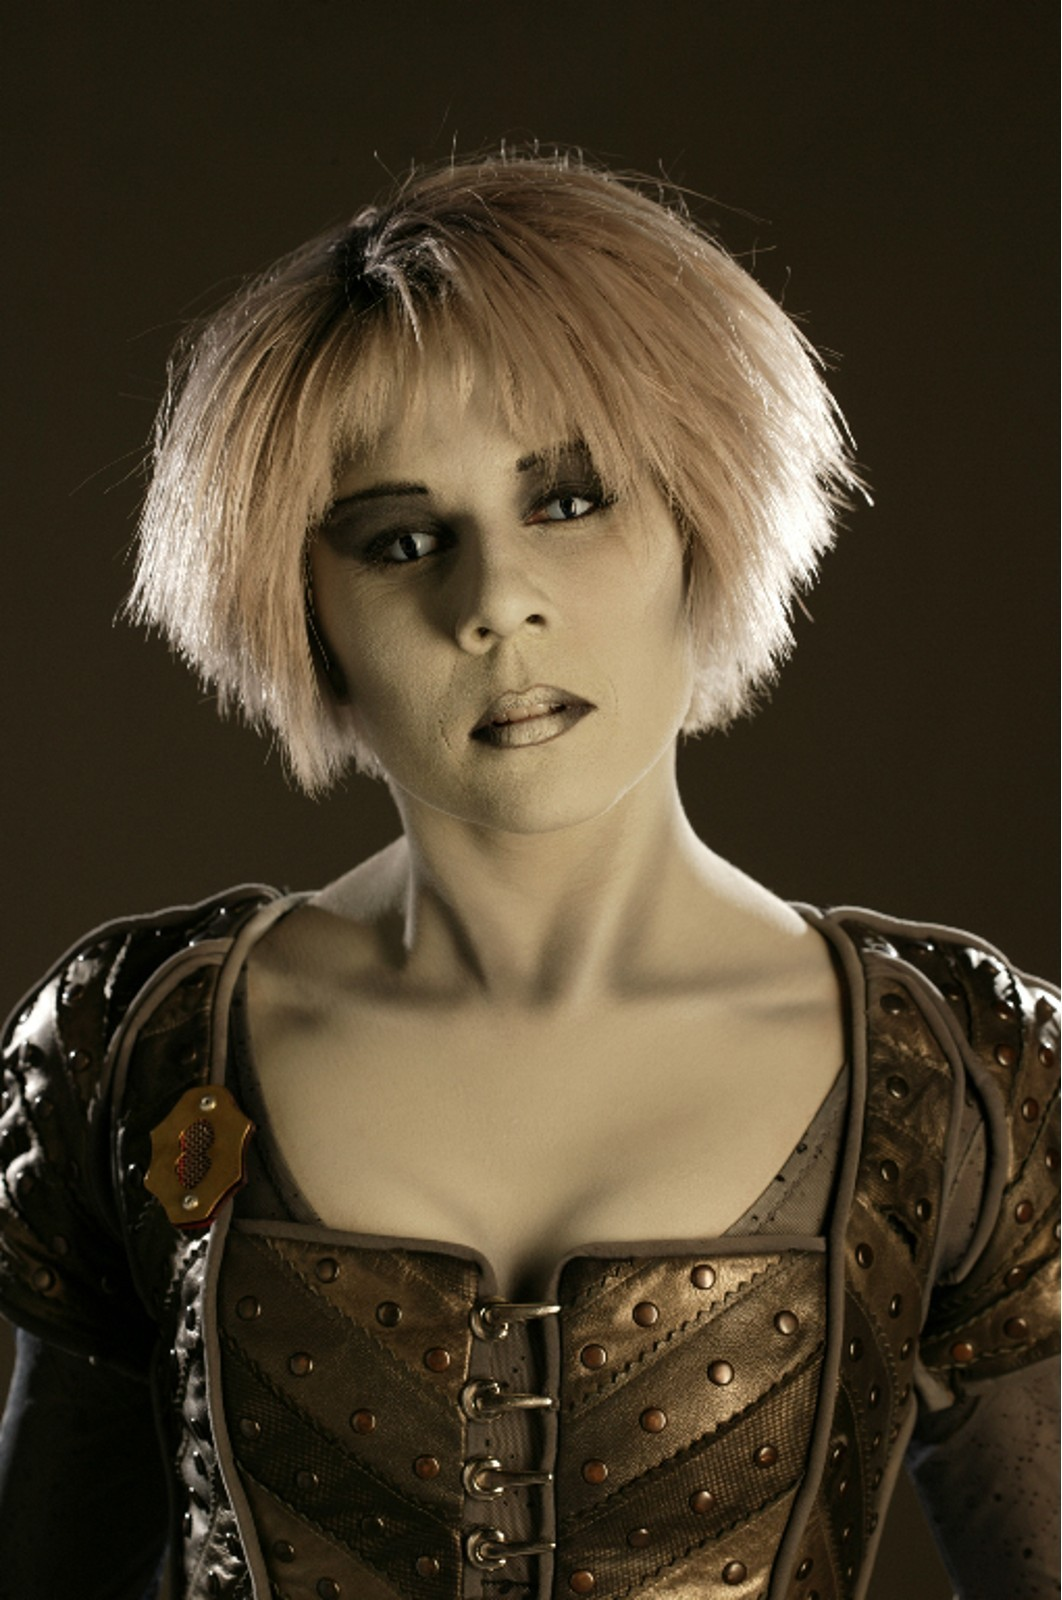 chiana farscape - photo #5